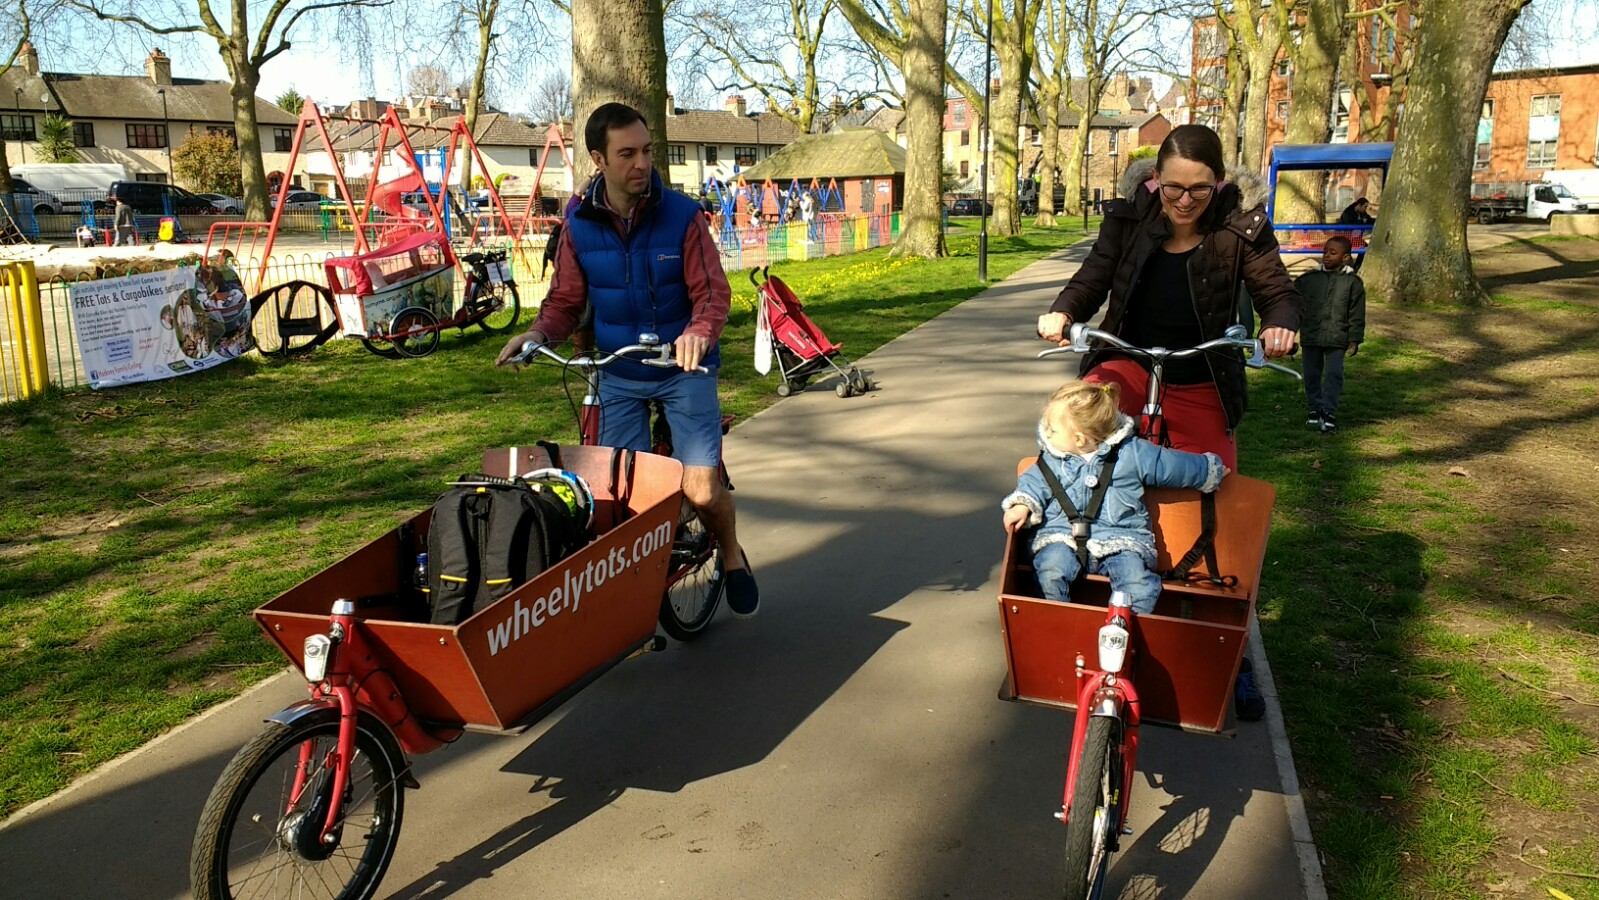 Tots, parents, and cargobikes in the park